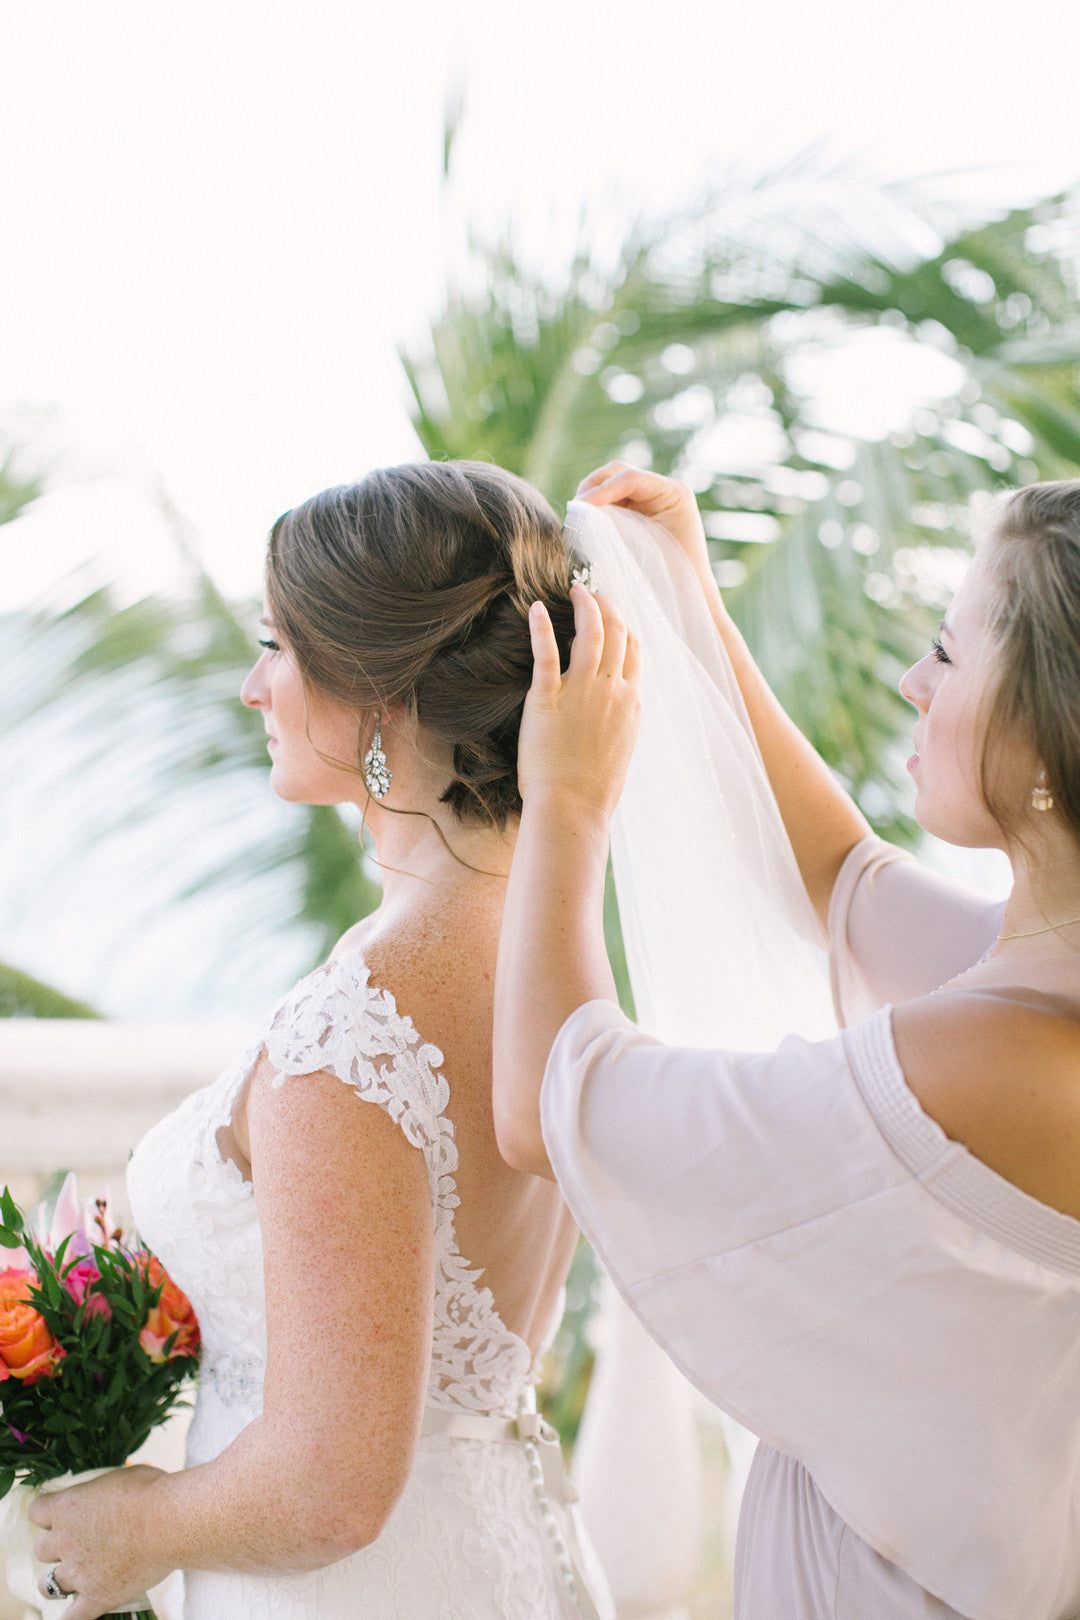 Bride and Bridesmaid | A Dreamy Destination Wedding at St. Thomas | Kate Aspen